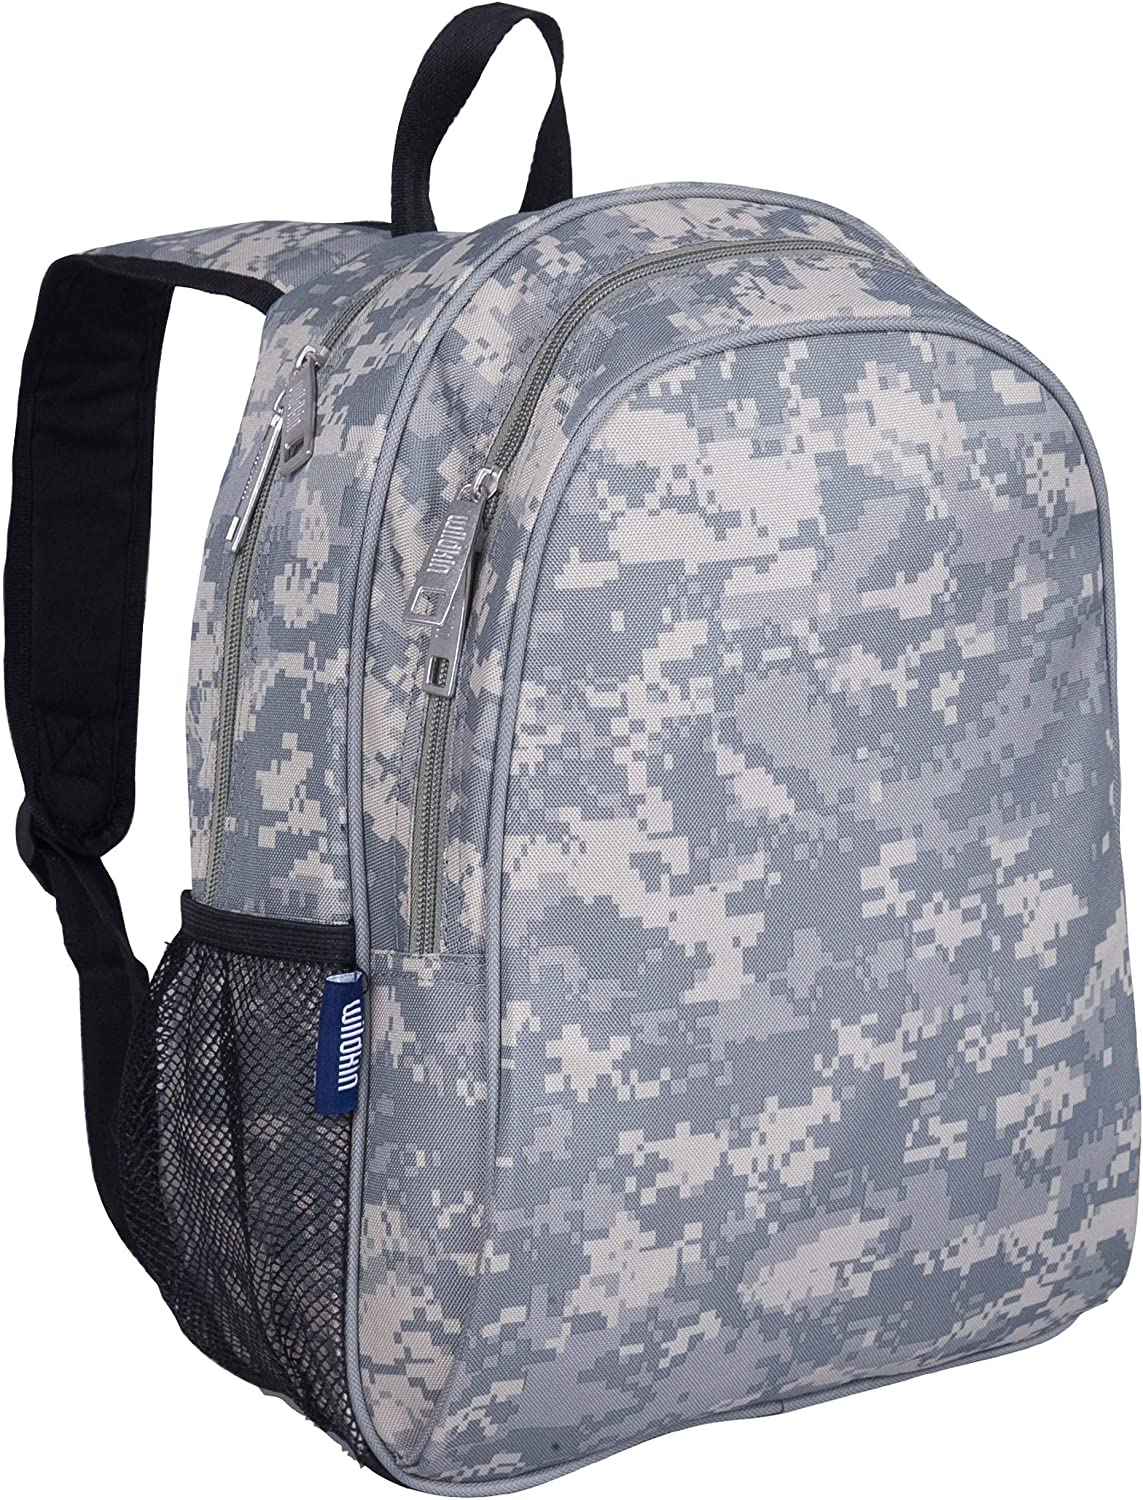 Wildkin Kids 15 Inch Backpack for Boys and Girls, Perfect Size for Preschool, Kindergarten and Elementary School, 600-Denier Polyester Fabric Backpacks, BPA-free (Digital Camo)